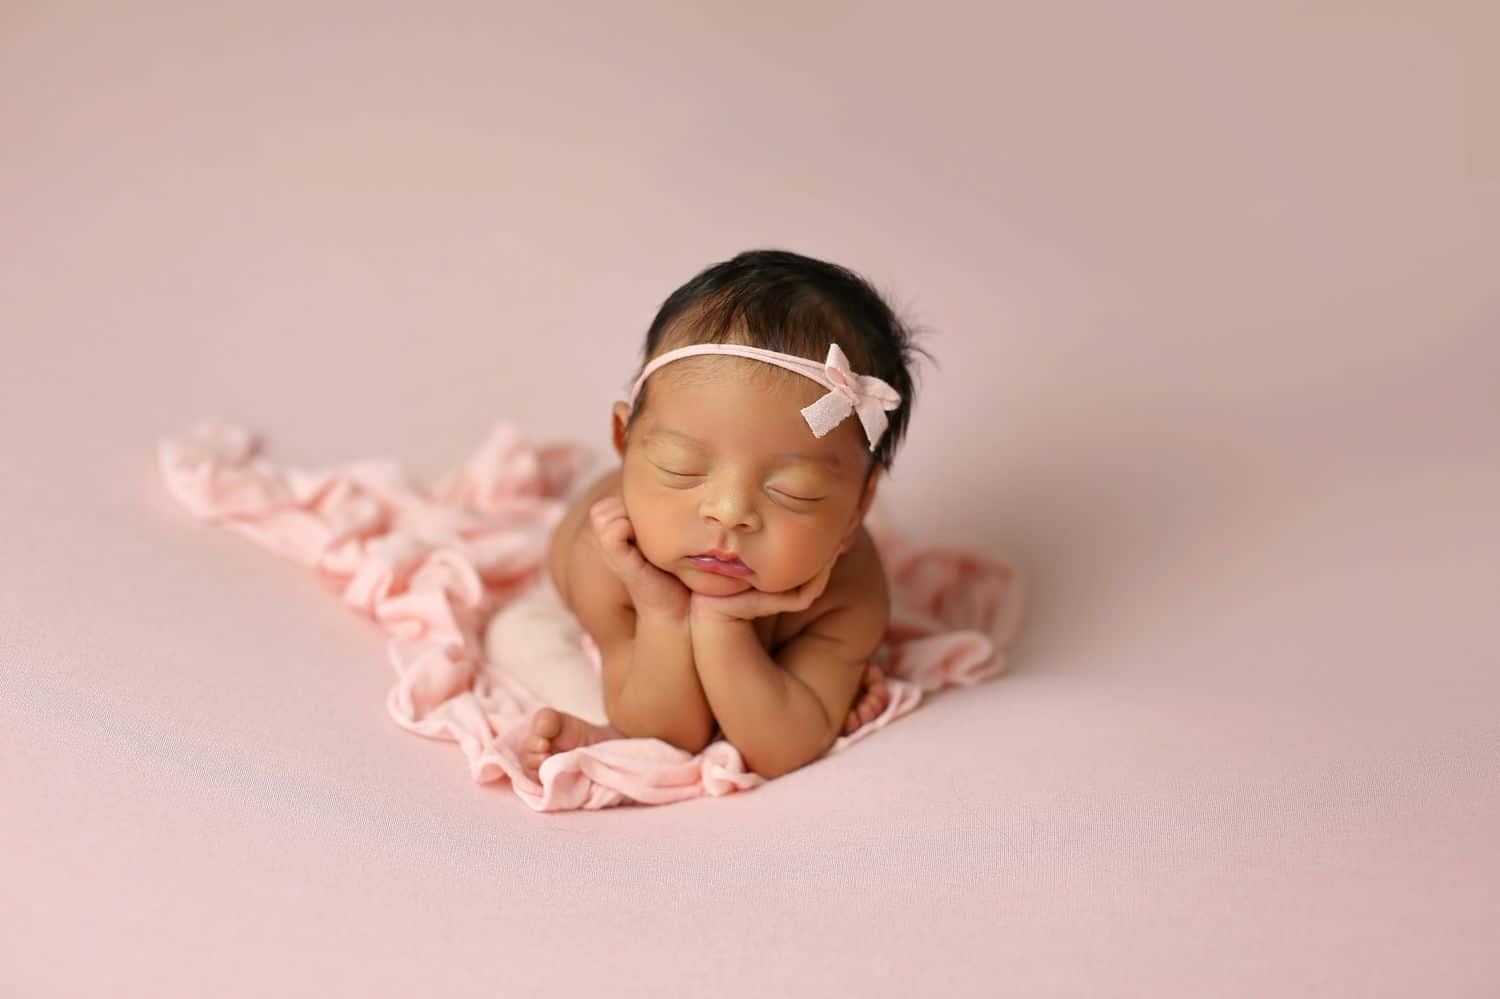 How To Attract New Clients In 3 Bold Business Moves: Newborn baby girl on pink backdrop by Cassie Clayshulte